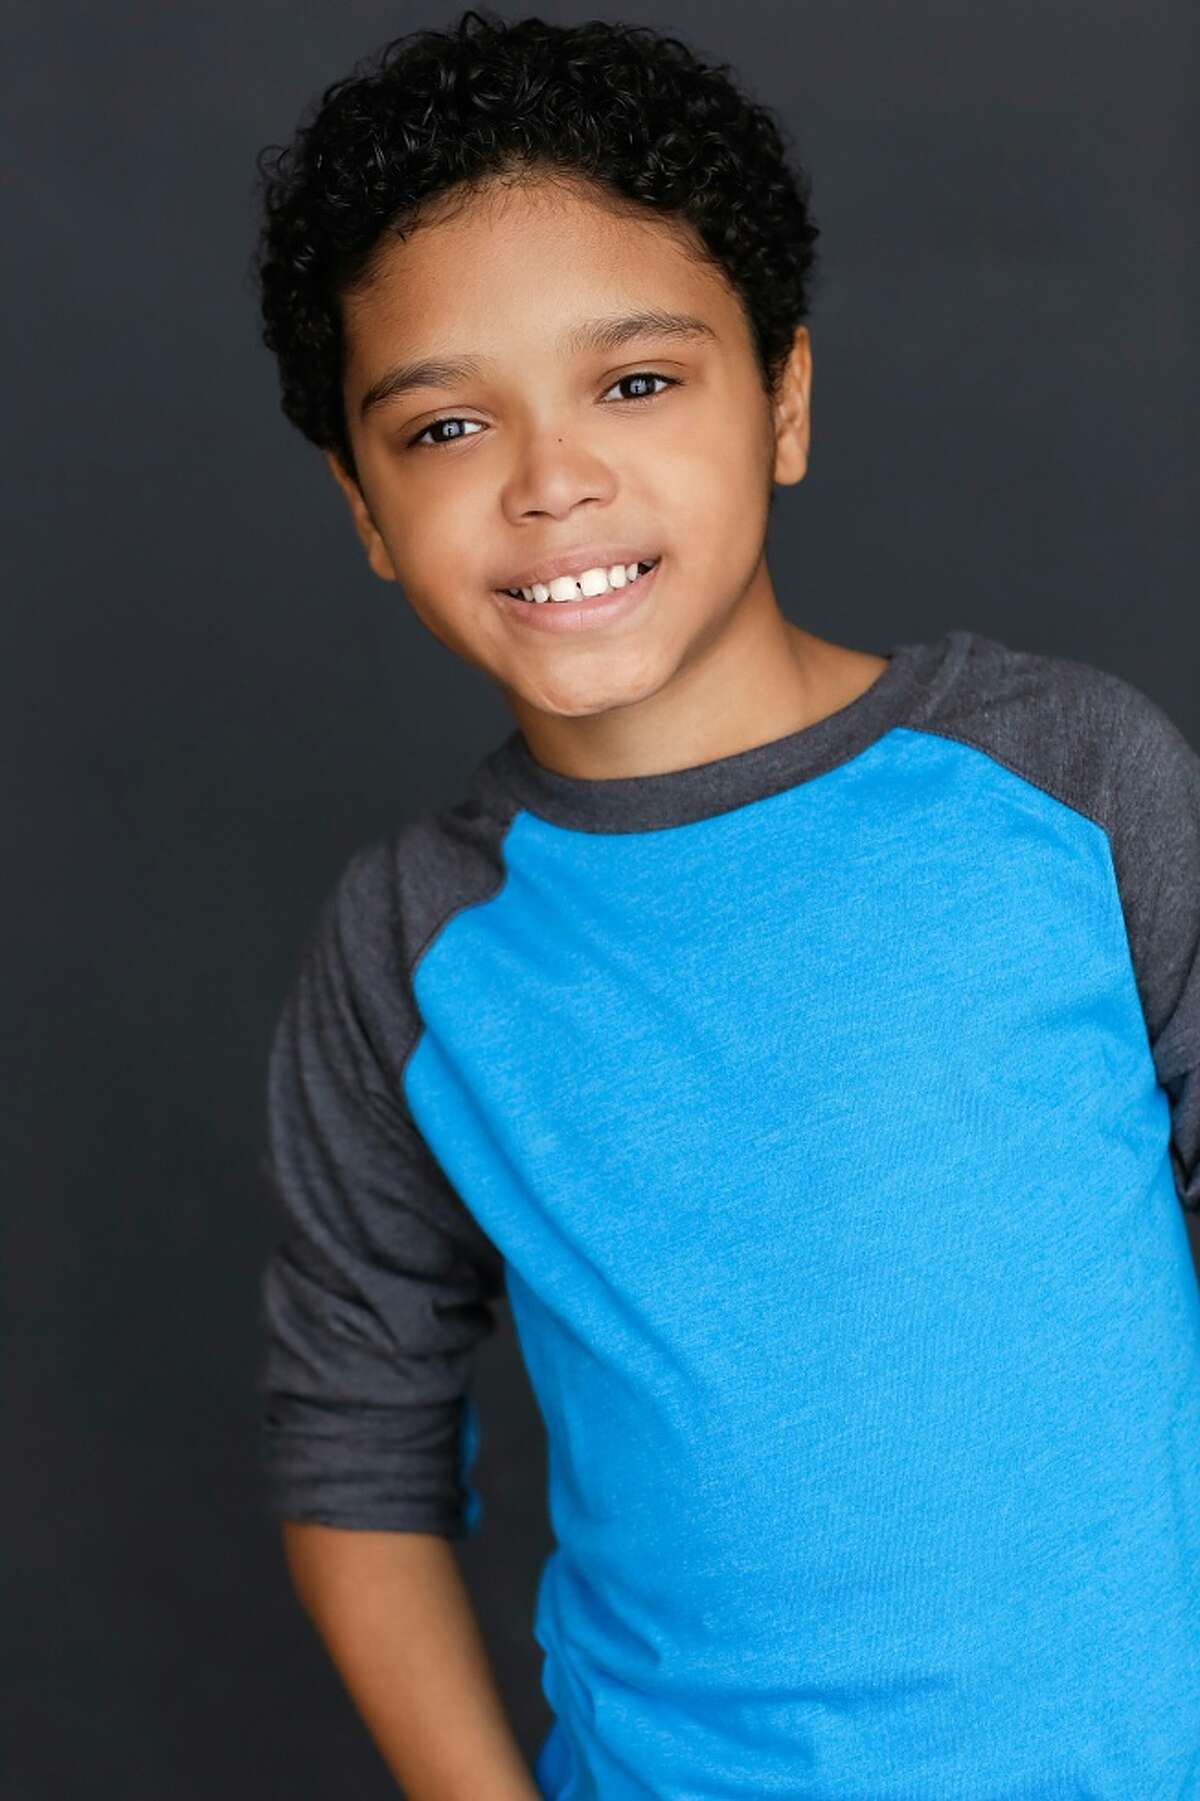 Gabriel Silva, 10, of Houston. He started acting when his mother thought it would help his self-esteem.